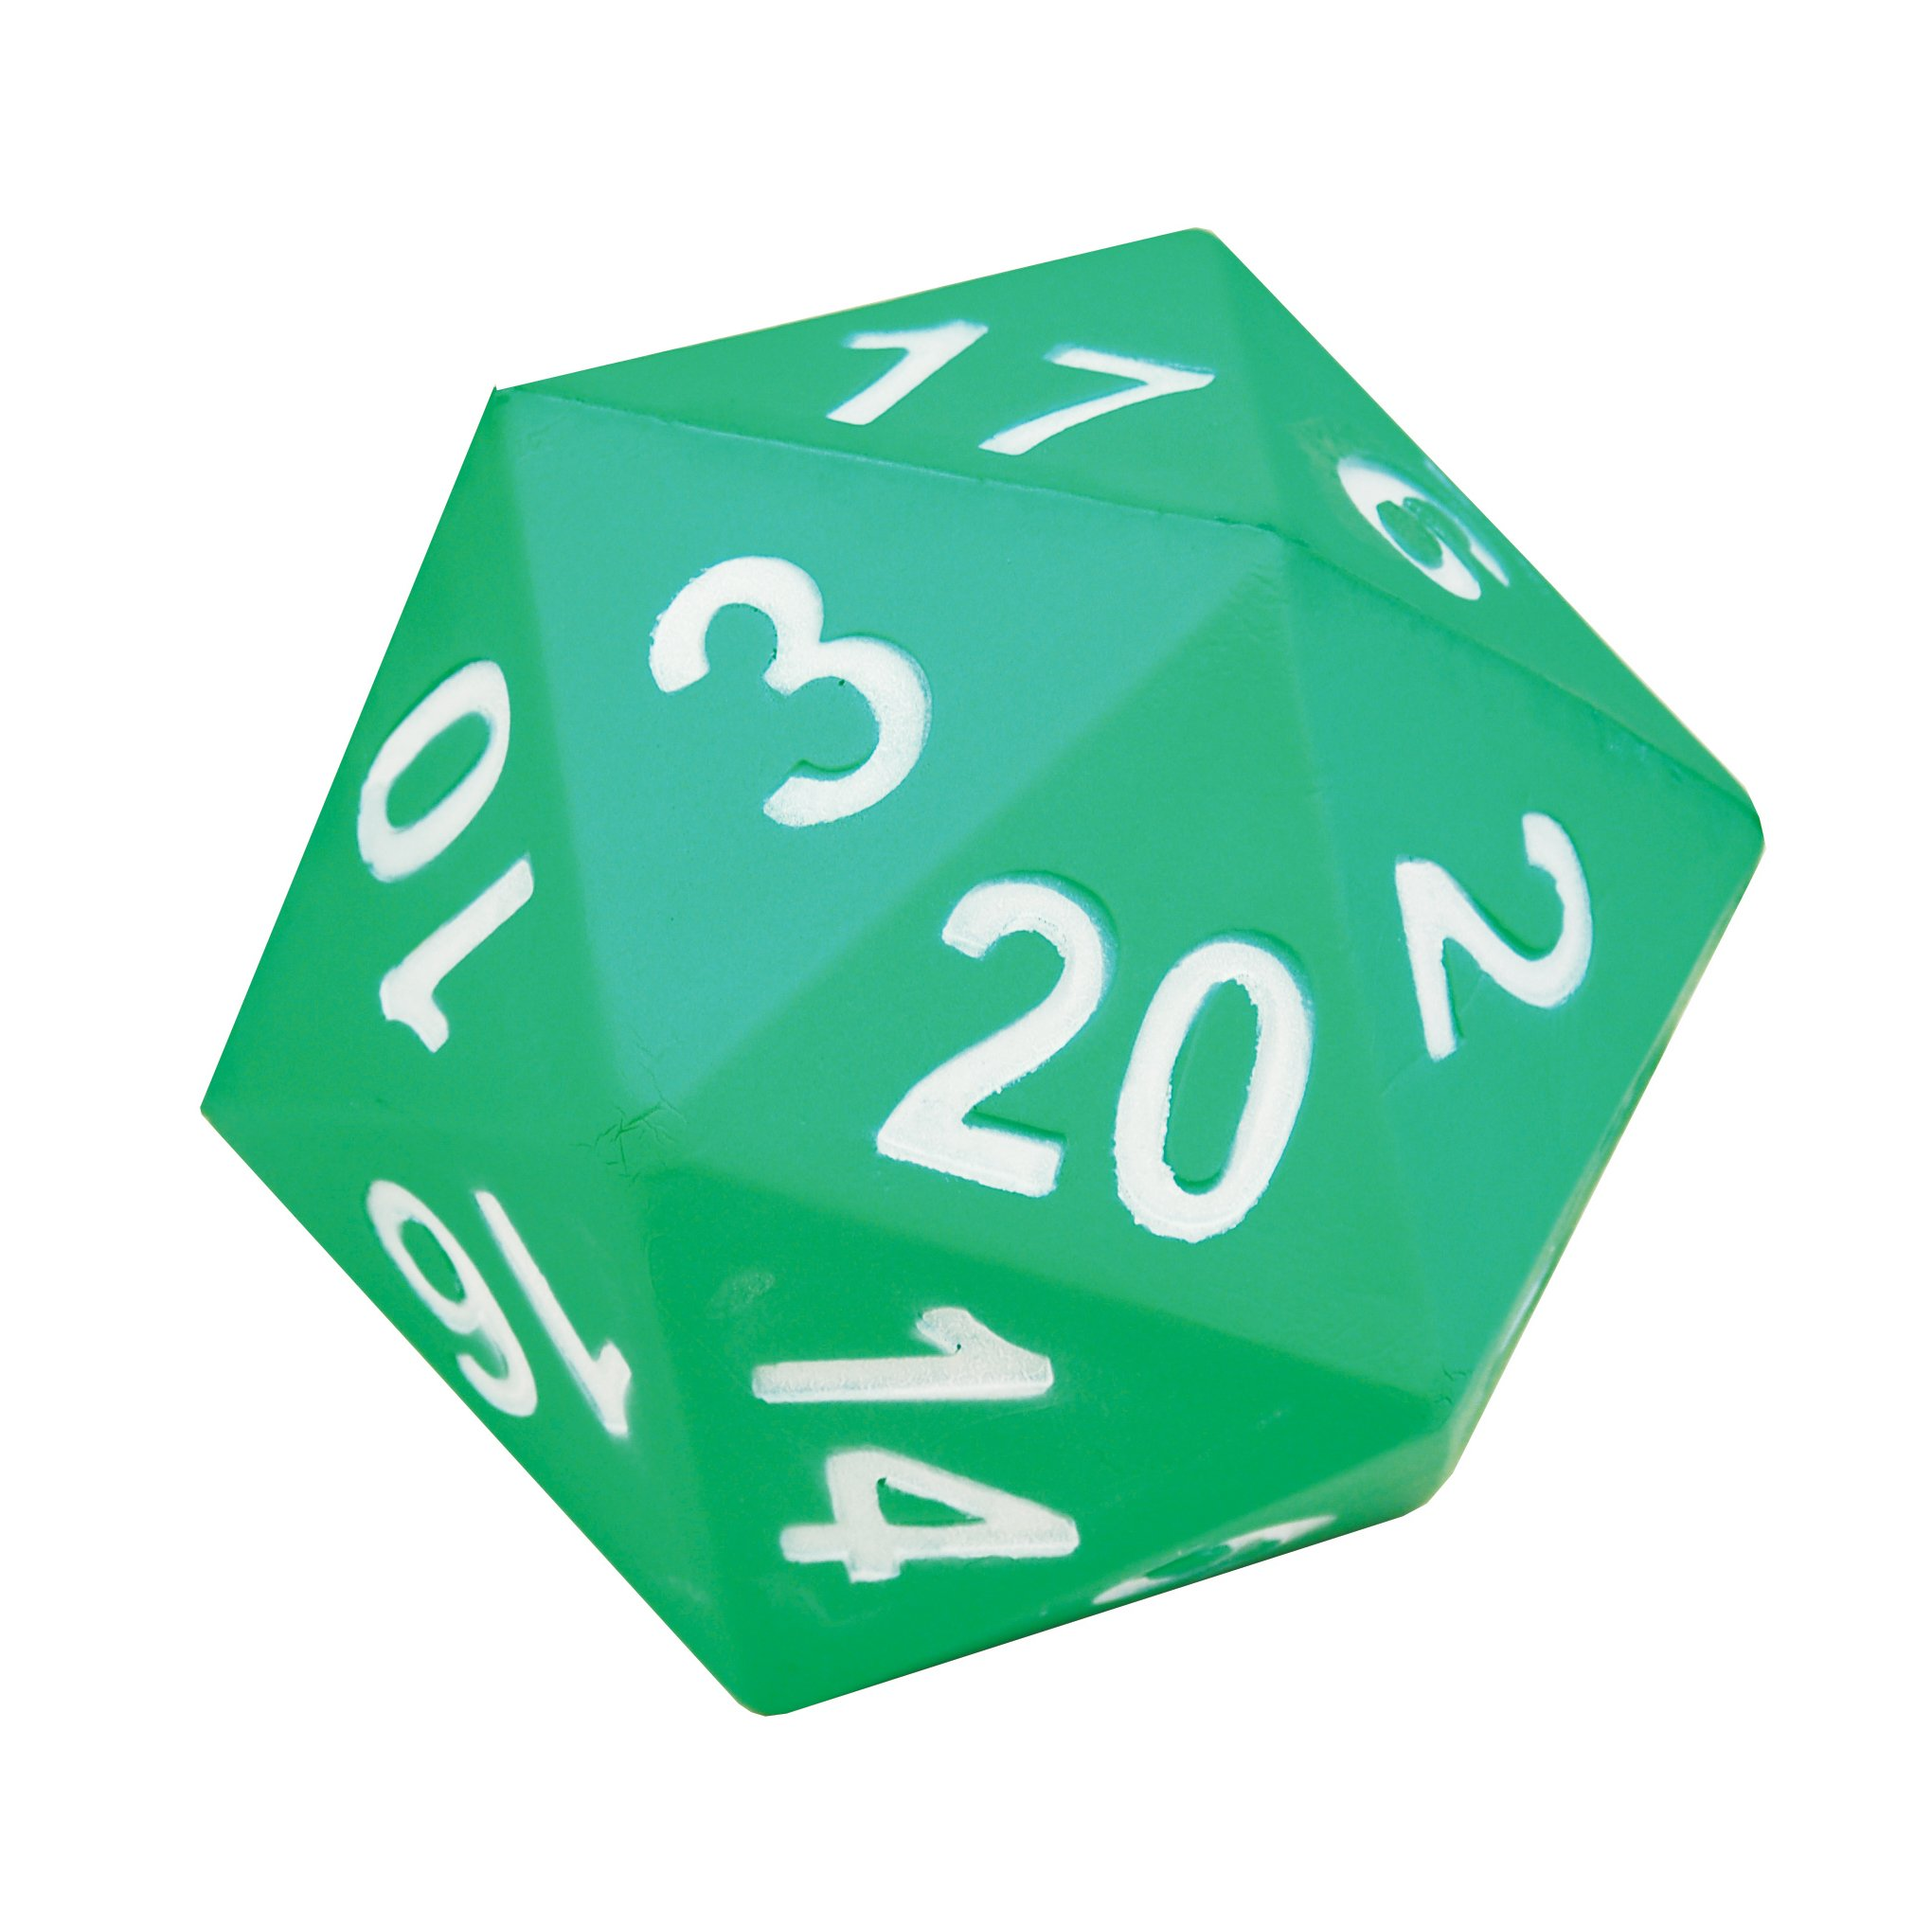 Learning Advantage Jumbo Polyhedra Die - 20 Sides - Large, Foam Dice for Games - Teach Numbers, Probability, Addition and Subtraction by Learning Advantage